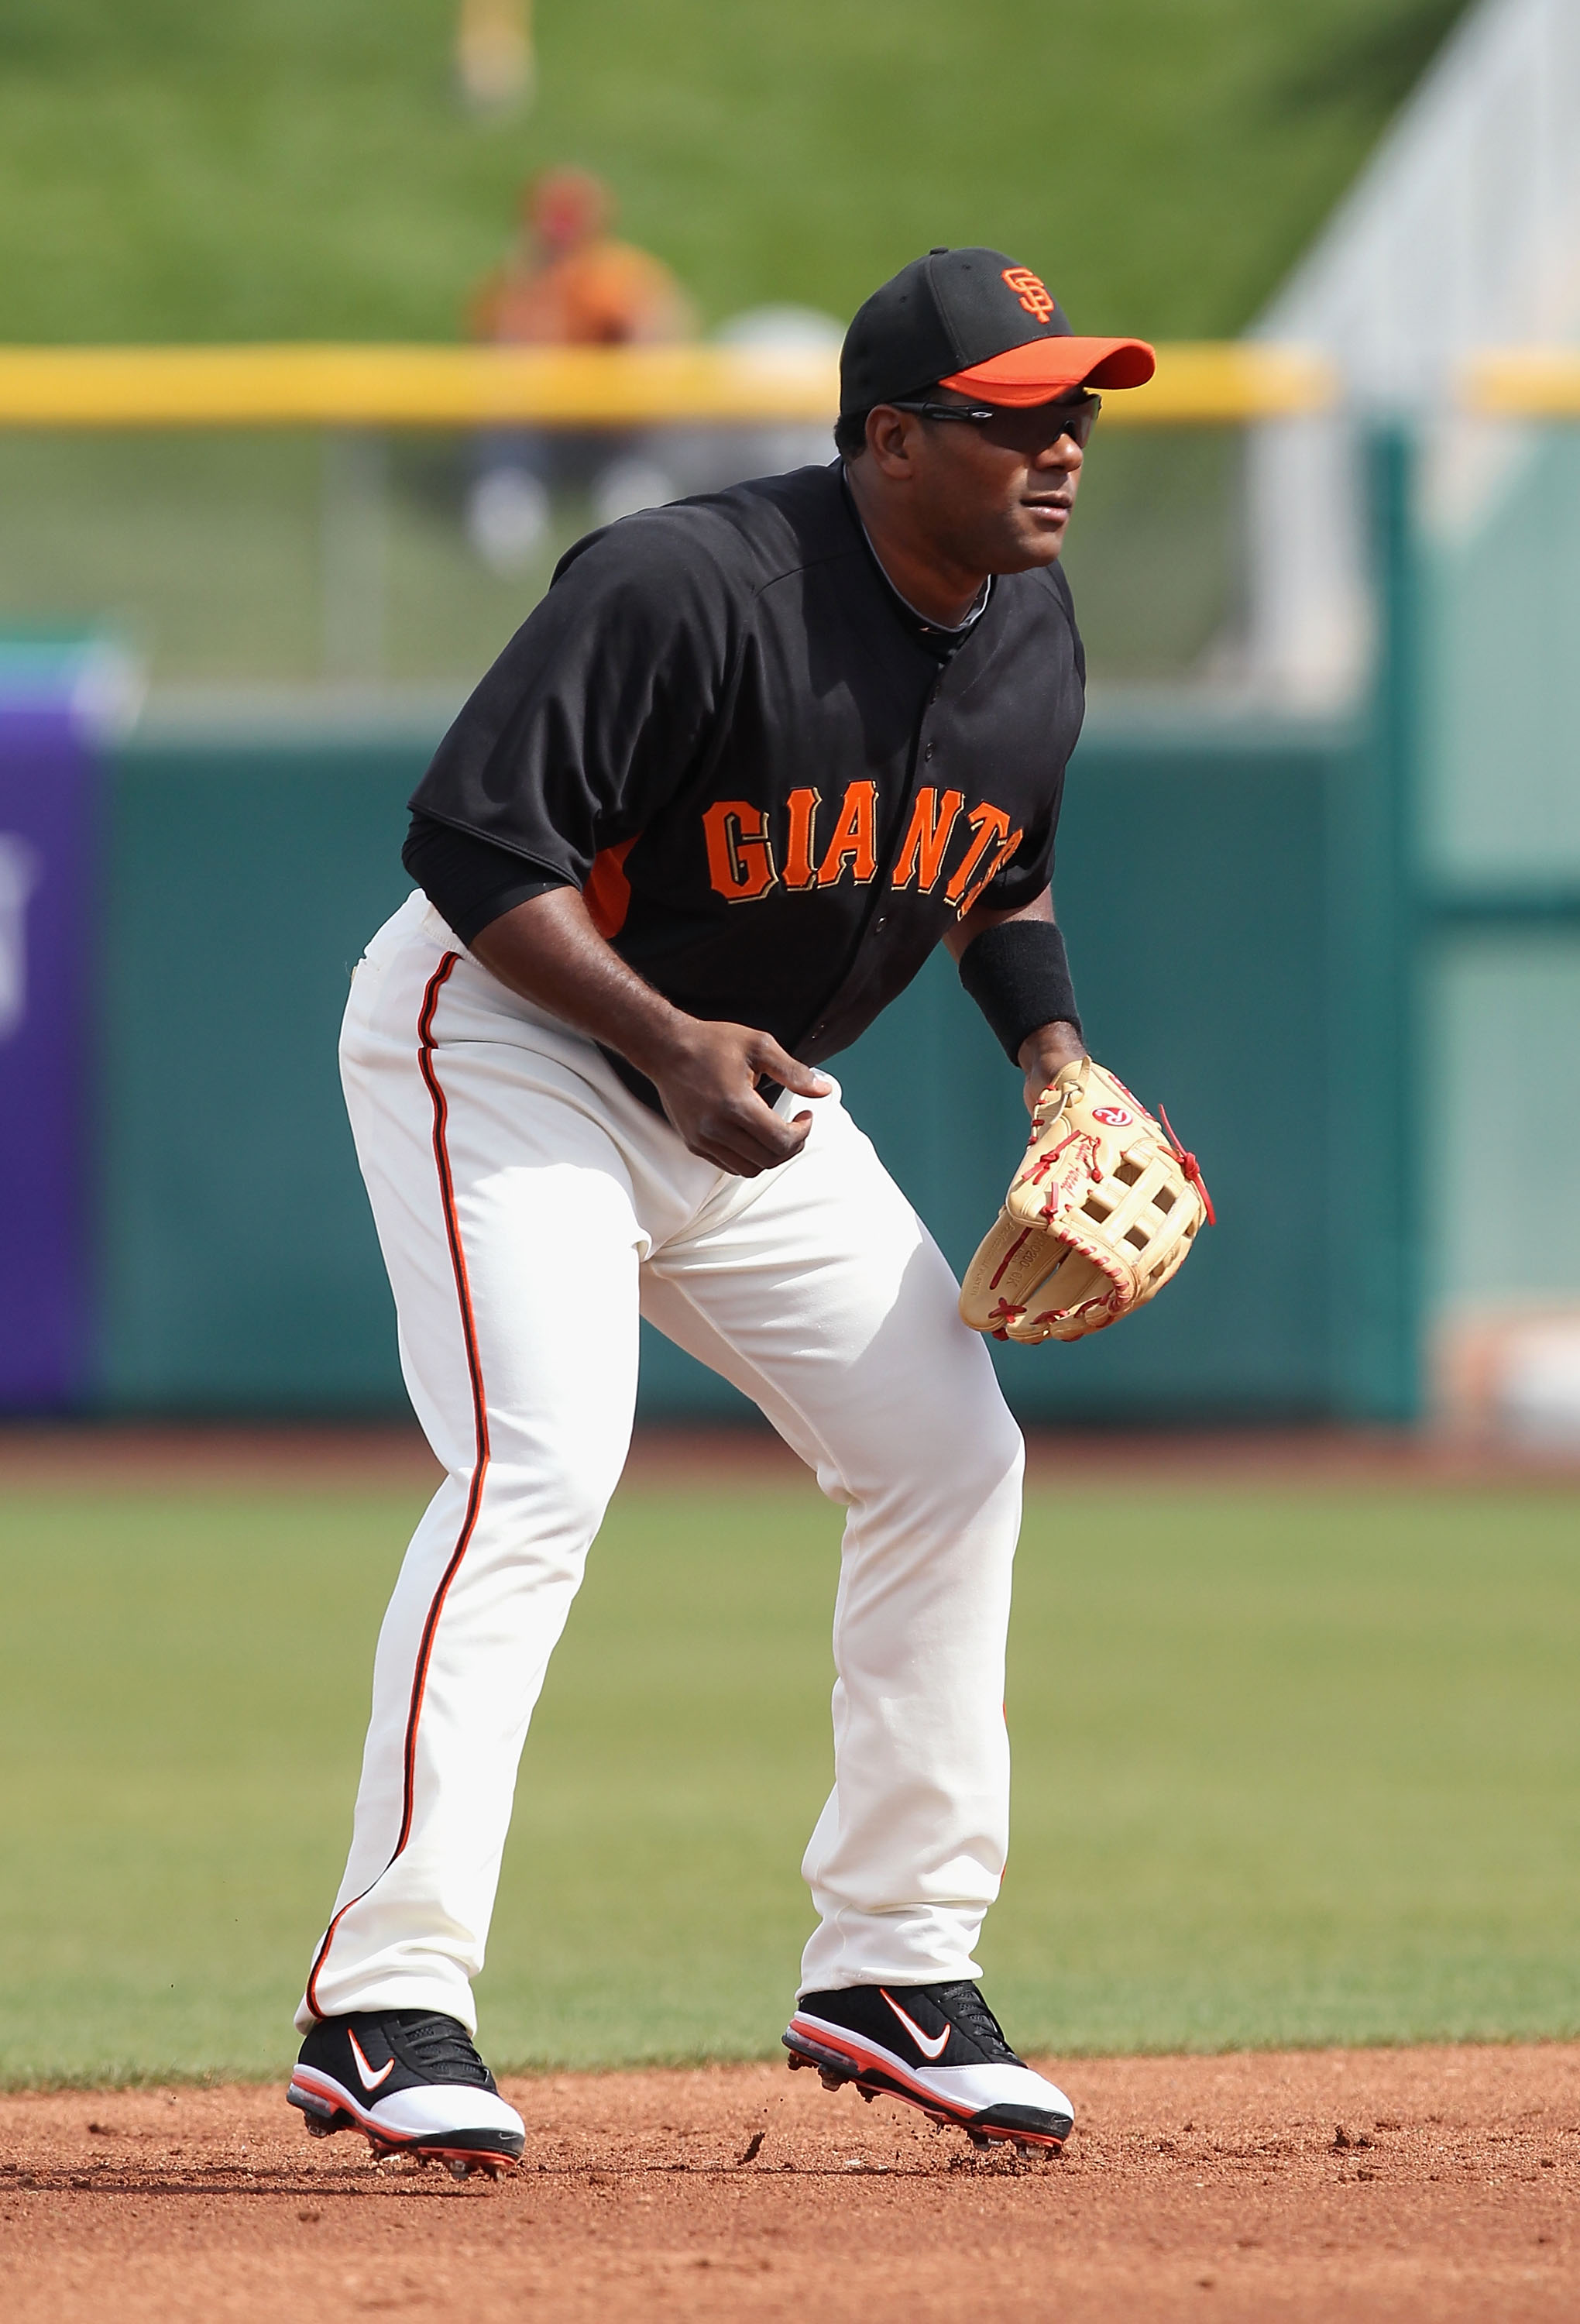 SCOTTSDALE, AZ - MARCH 01:  Infielder Miguel Tejada #10 of the San Francisco Giants in action during the spring training game against the Chicago Cubs at Scottsdale Stadium on March 1, 2011 in Scottsdale, Arizona.  (Photo by Christian Petersen/Getty Image